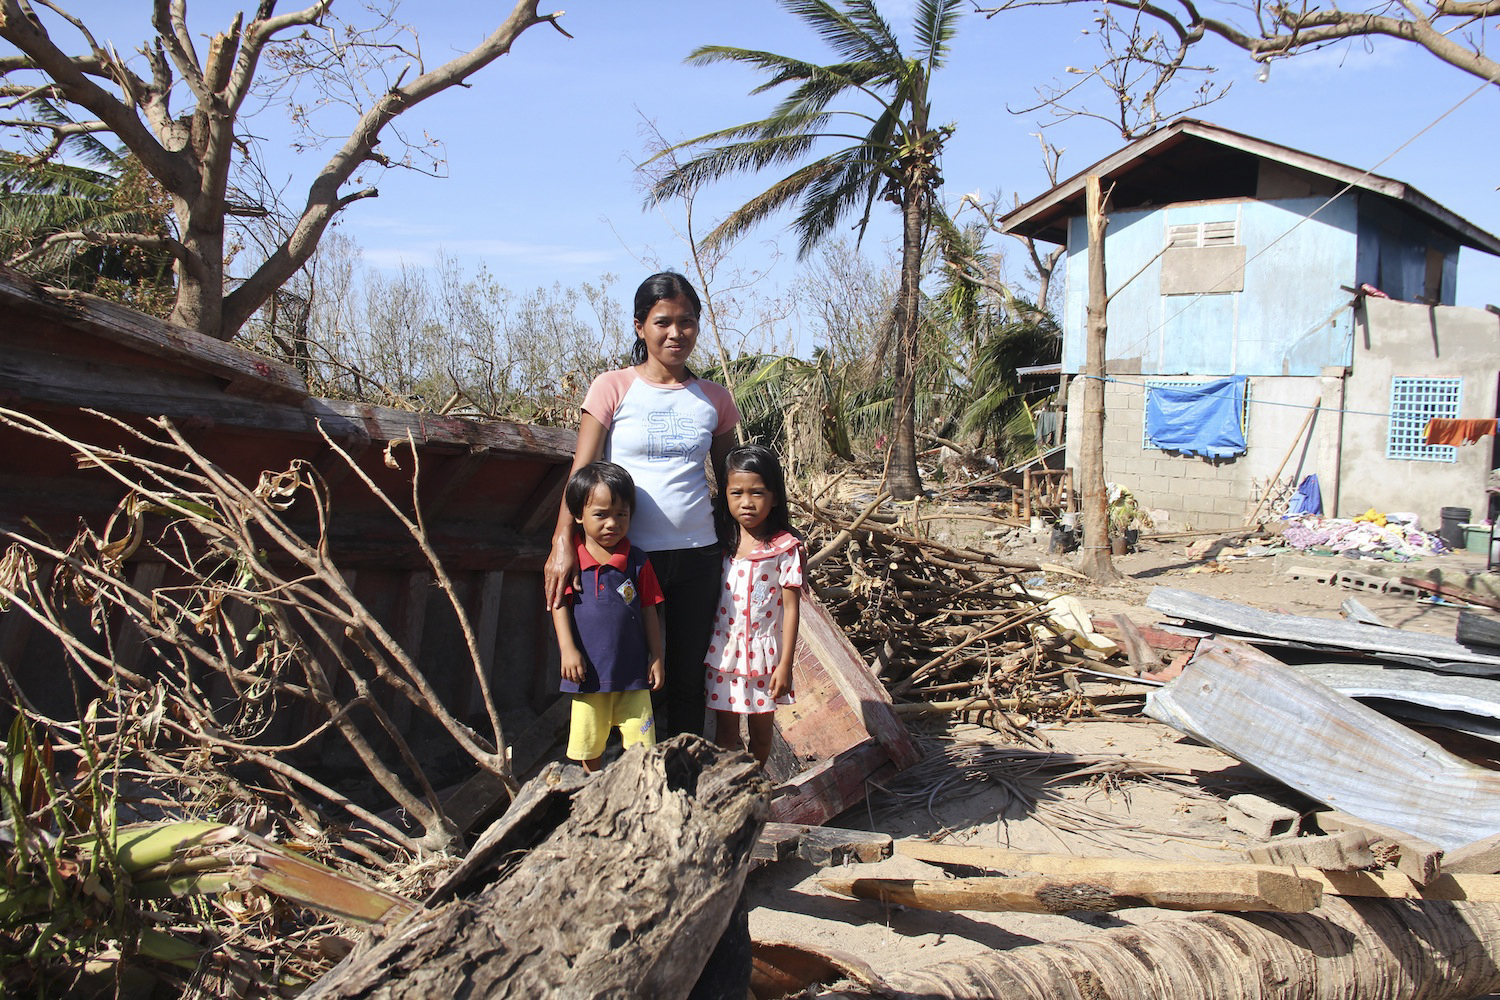 A family amidst devastation from Typhoon Haiyan.